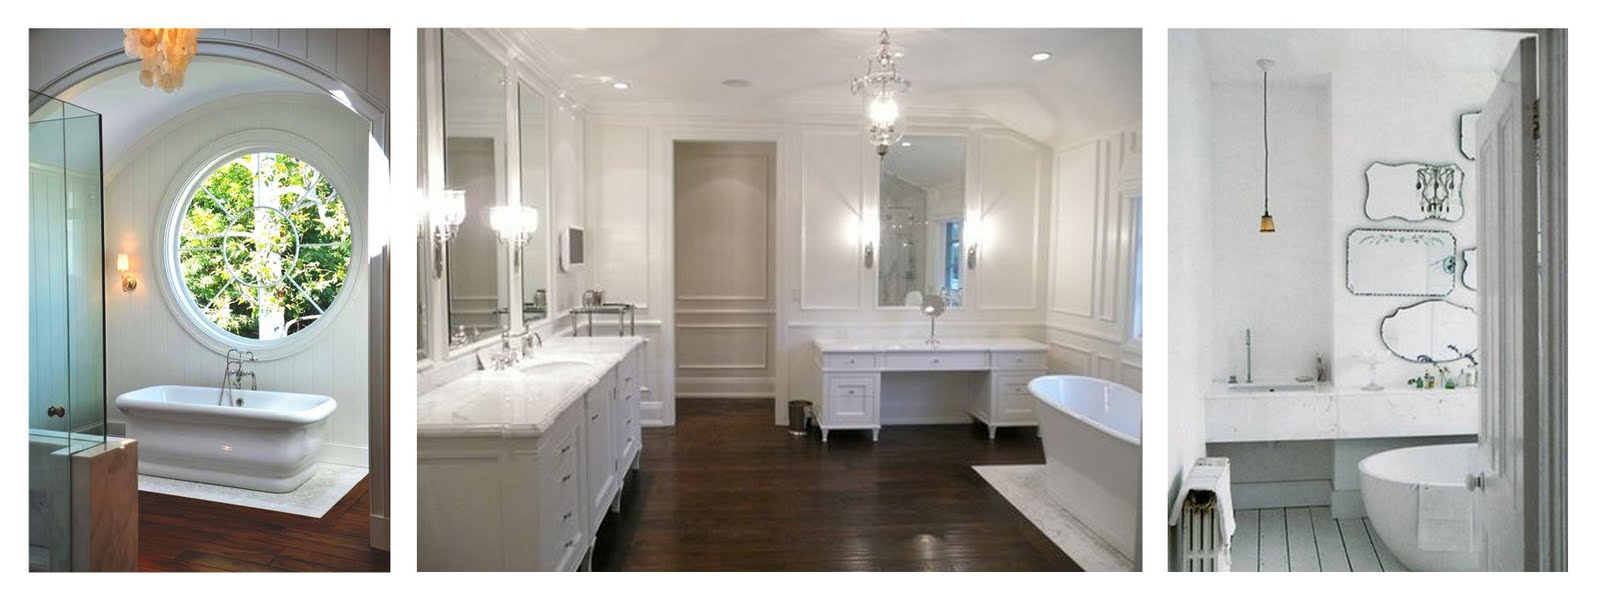 Beaucoup de travail beautiful bathrooms for Beautiful bathrooms